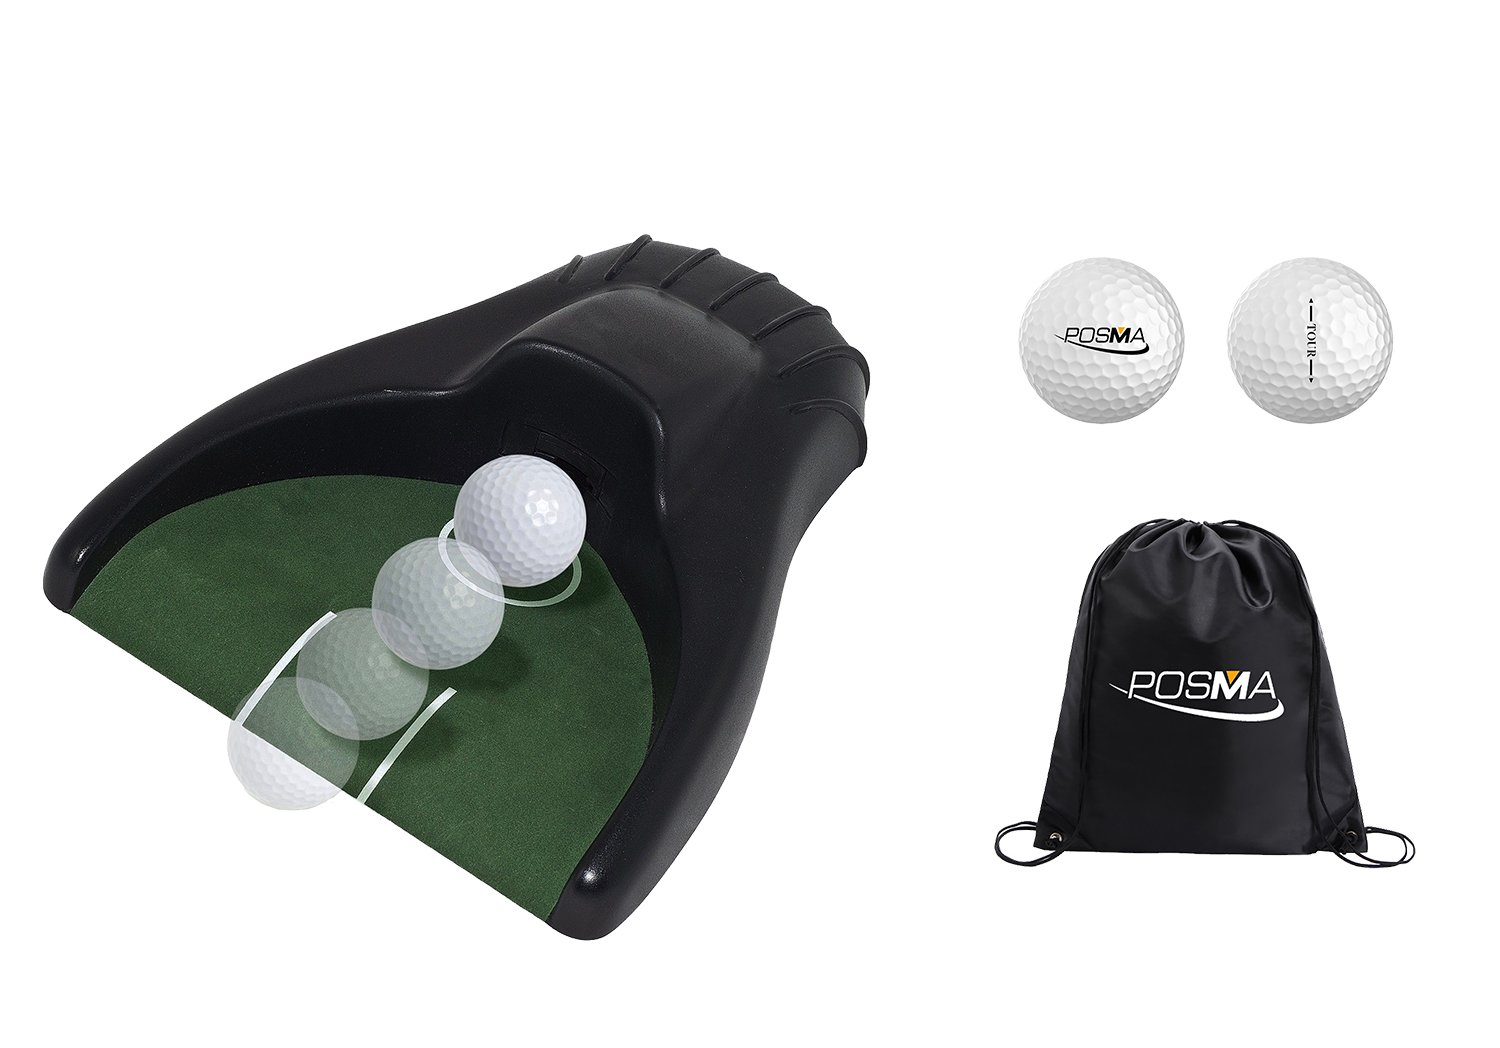 POSMA PG150A Golf Kickback Putt Cup Gift Set Auto Return Putting Cup Golf Putter Trainer